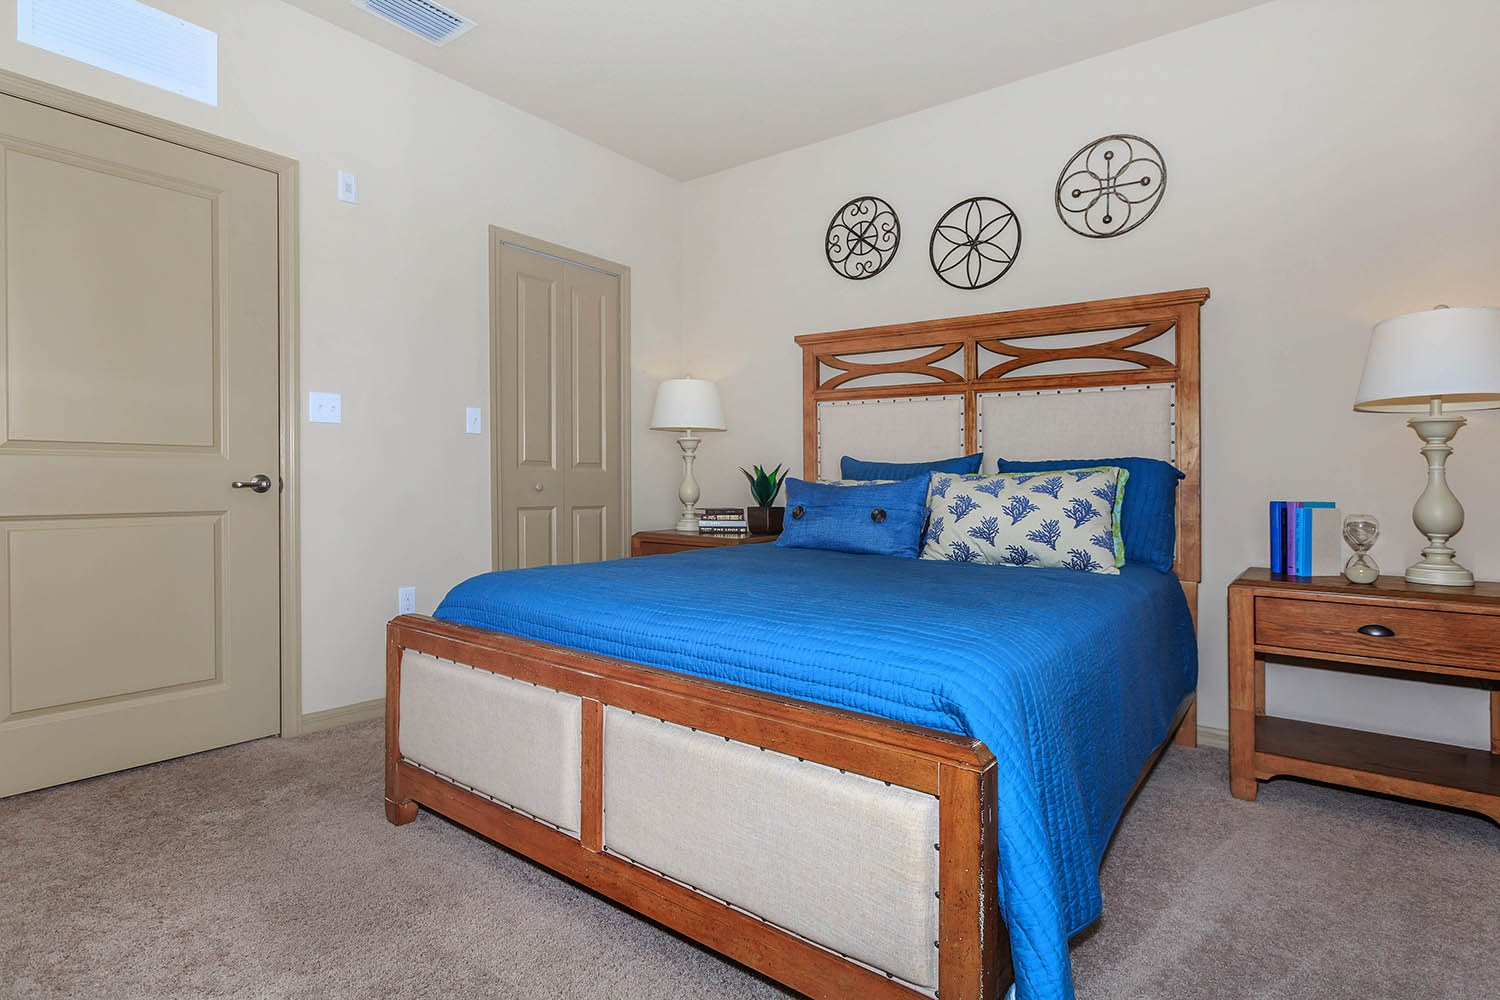 Bedroom at Riversong Apartments in Bradenton, FL